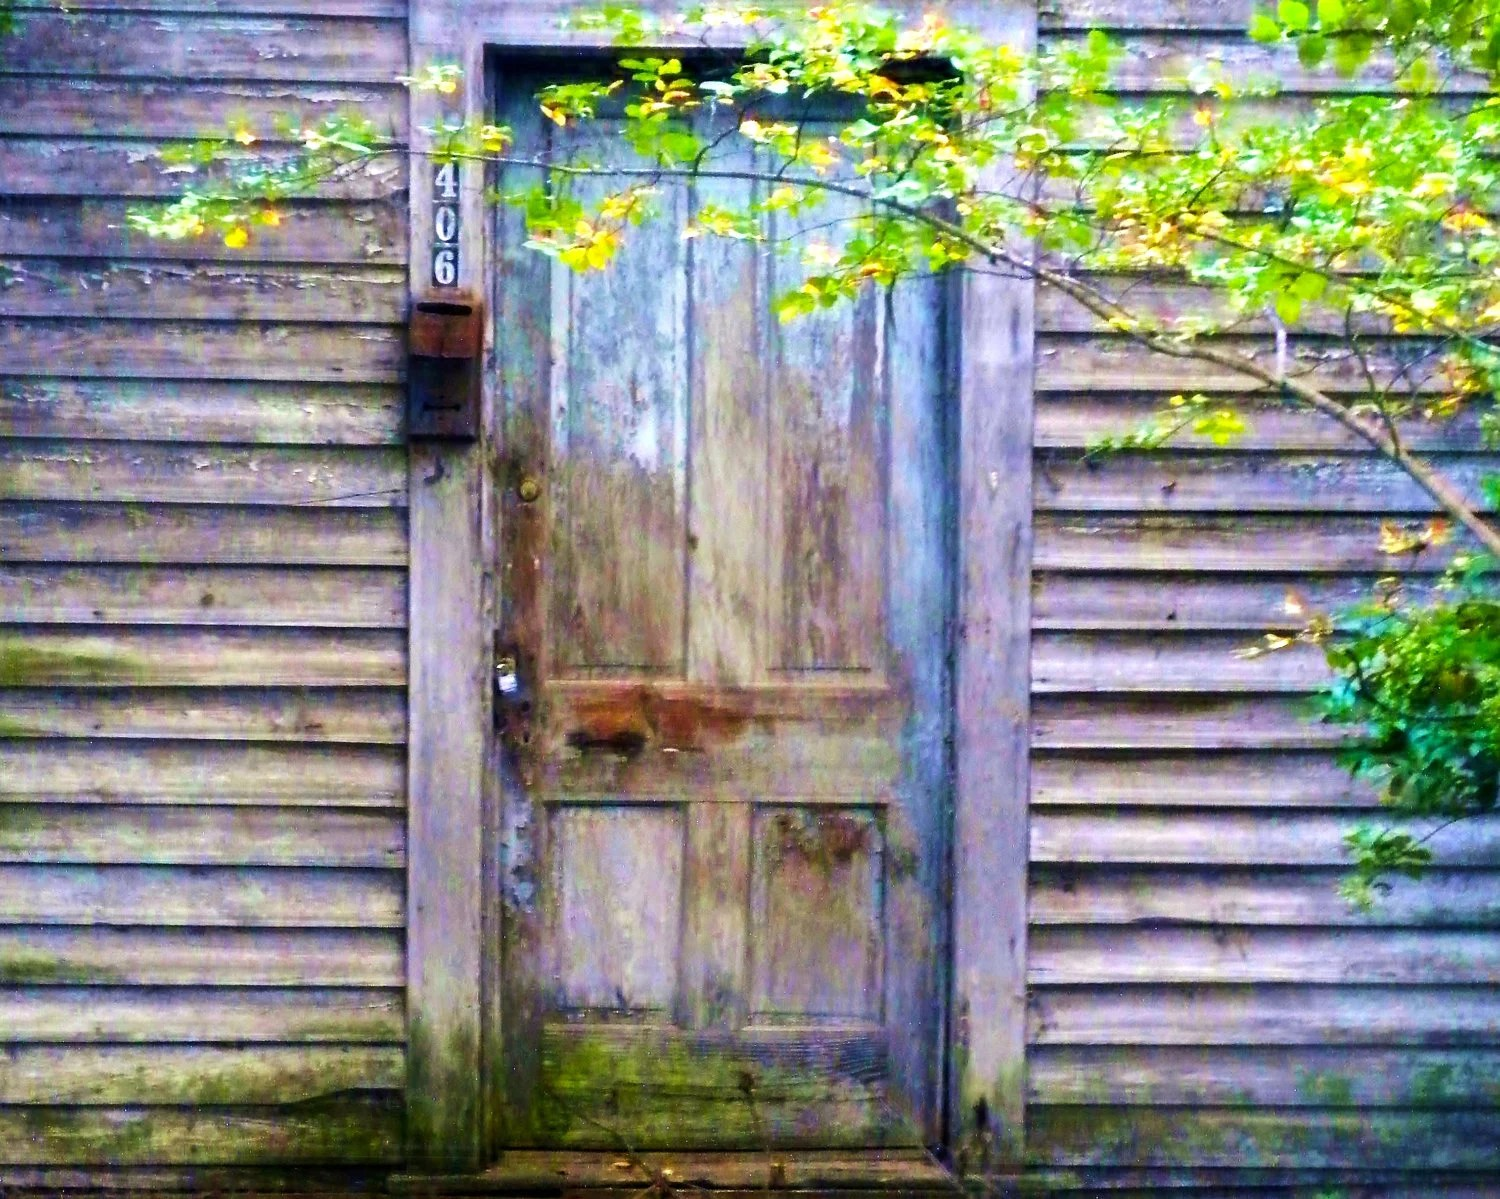 Fine Art Photography - Door with Aged Colors - Southern, Rural, Travel Photography-8x10 Wall Art - PetitePastiche